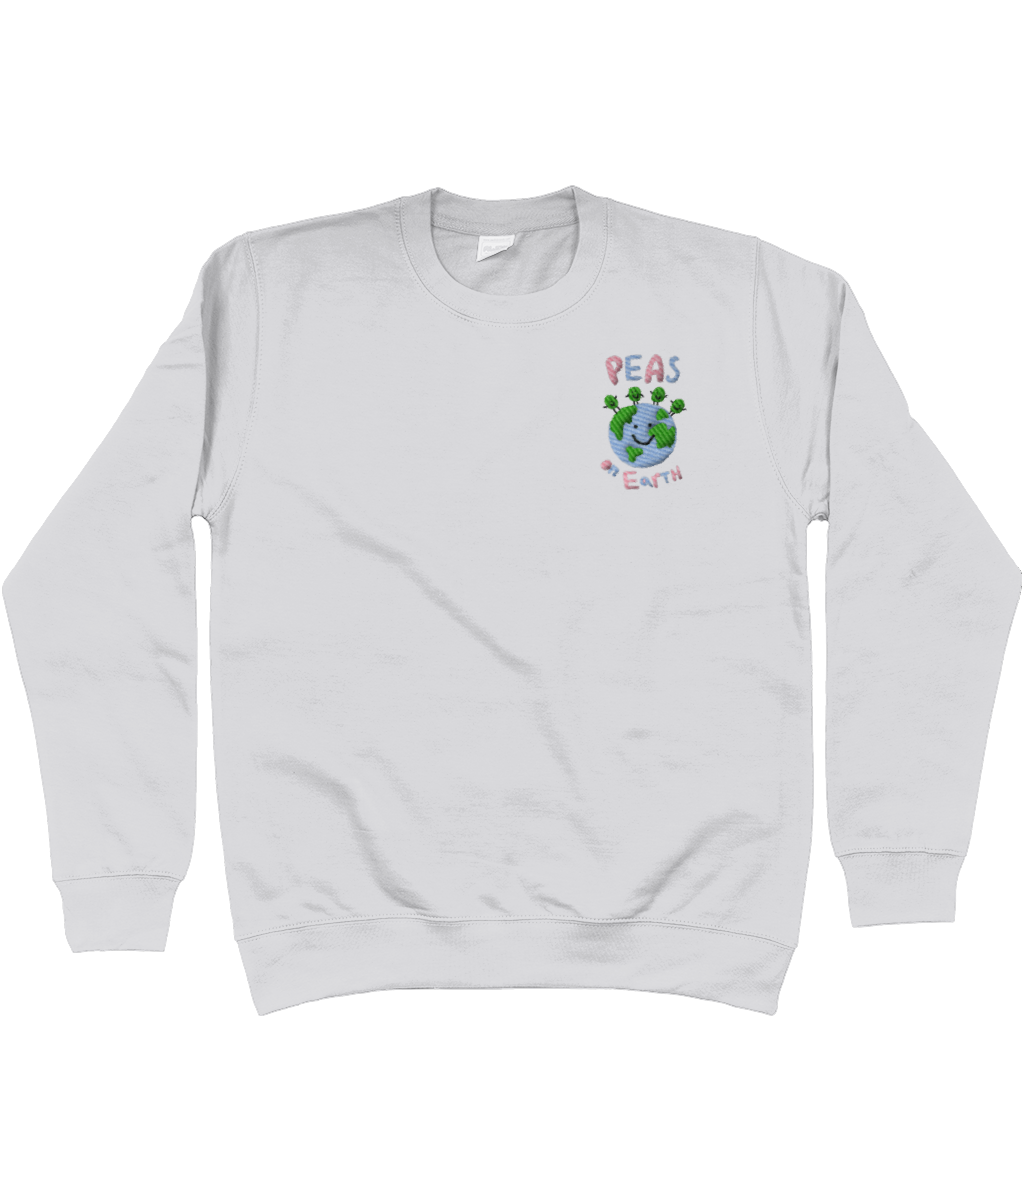 Peas on Earth Embroidered Apparel